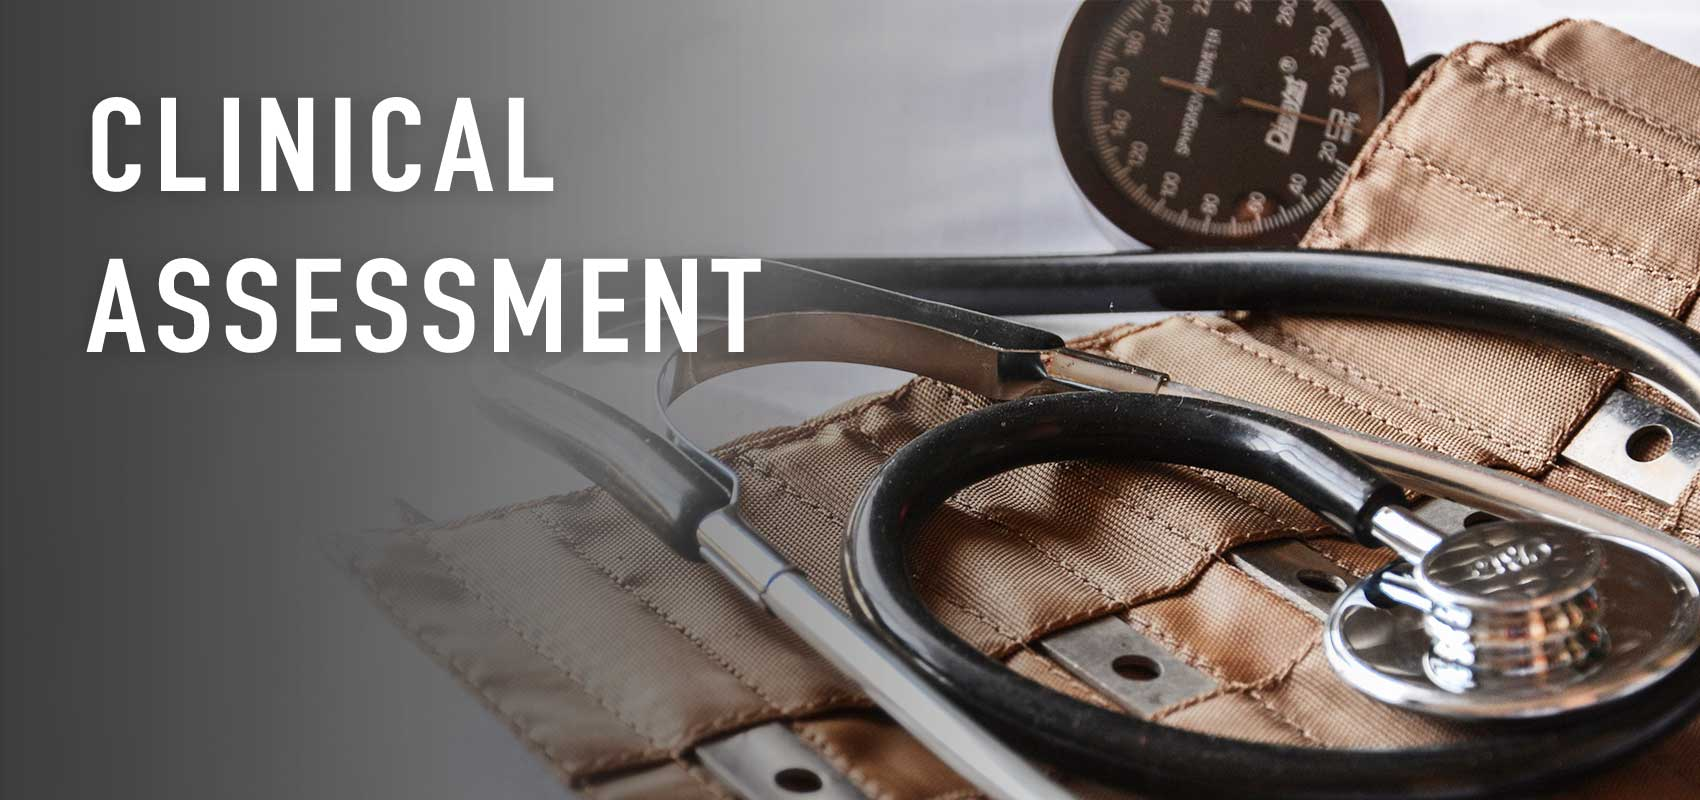 Clinical Assessment and Care